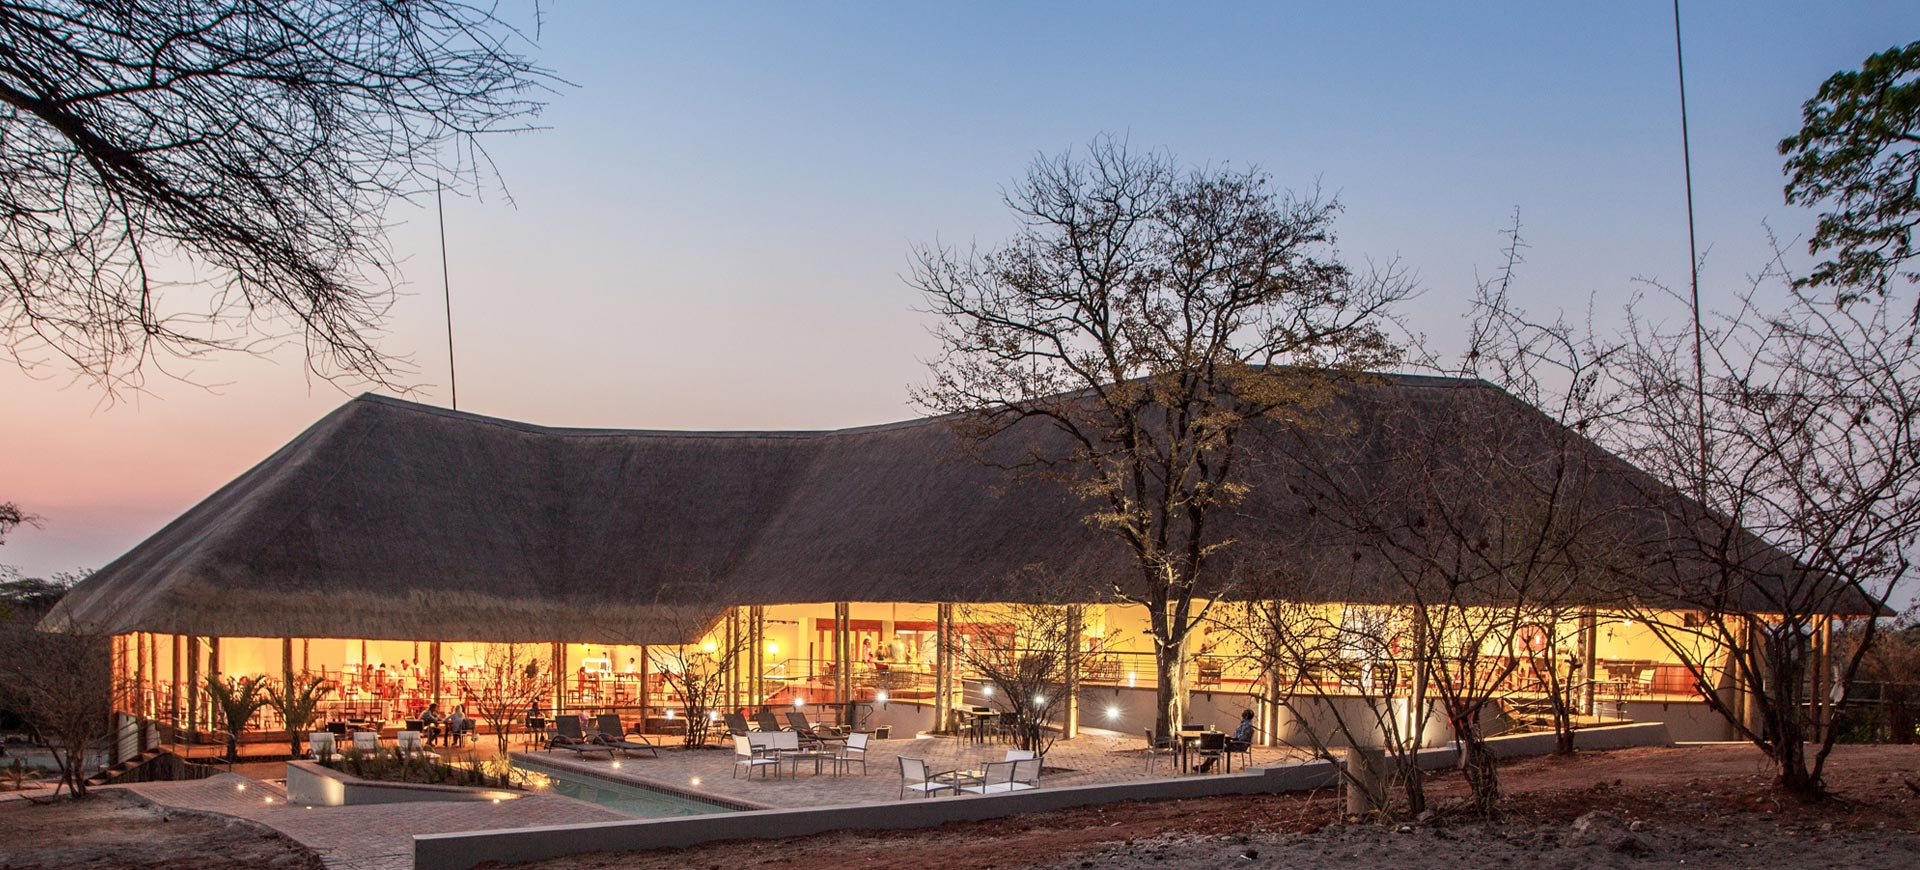 Bush Lodge Chobe Botswana